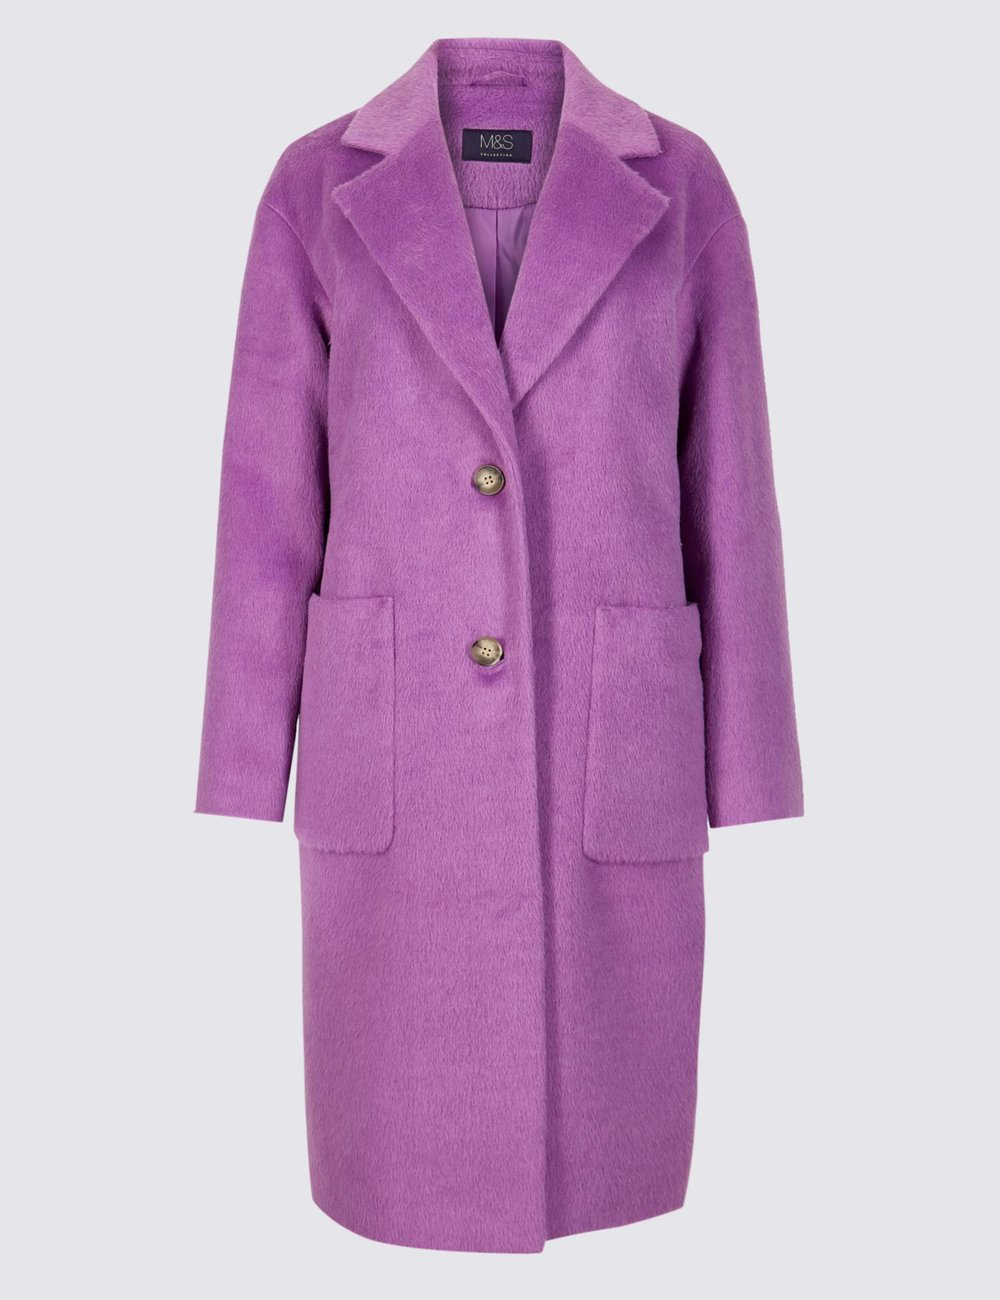 M&S single breasted coat